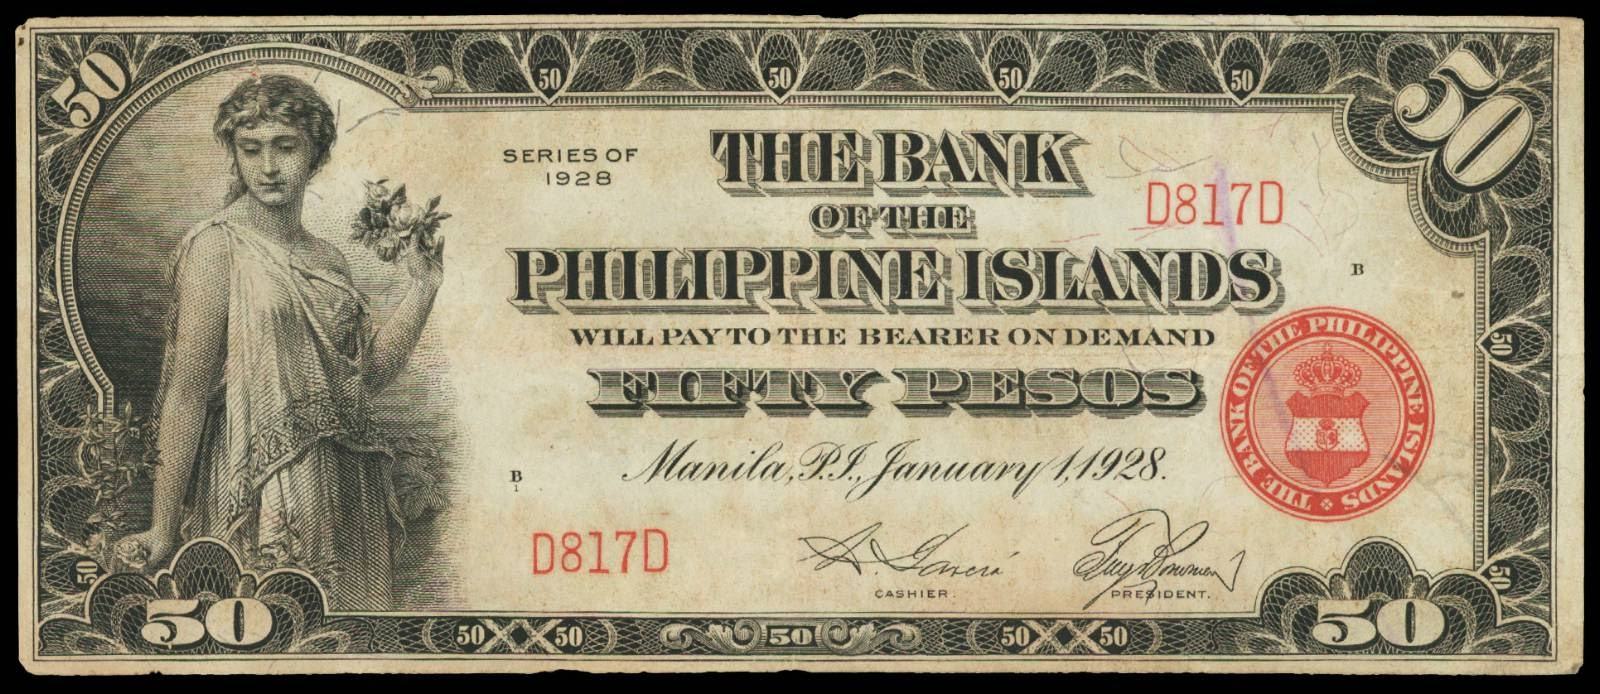 Currency of the Philippines 1928 50 Pesos Note